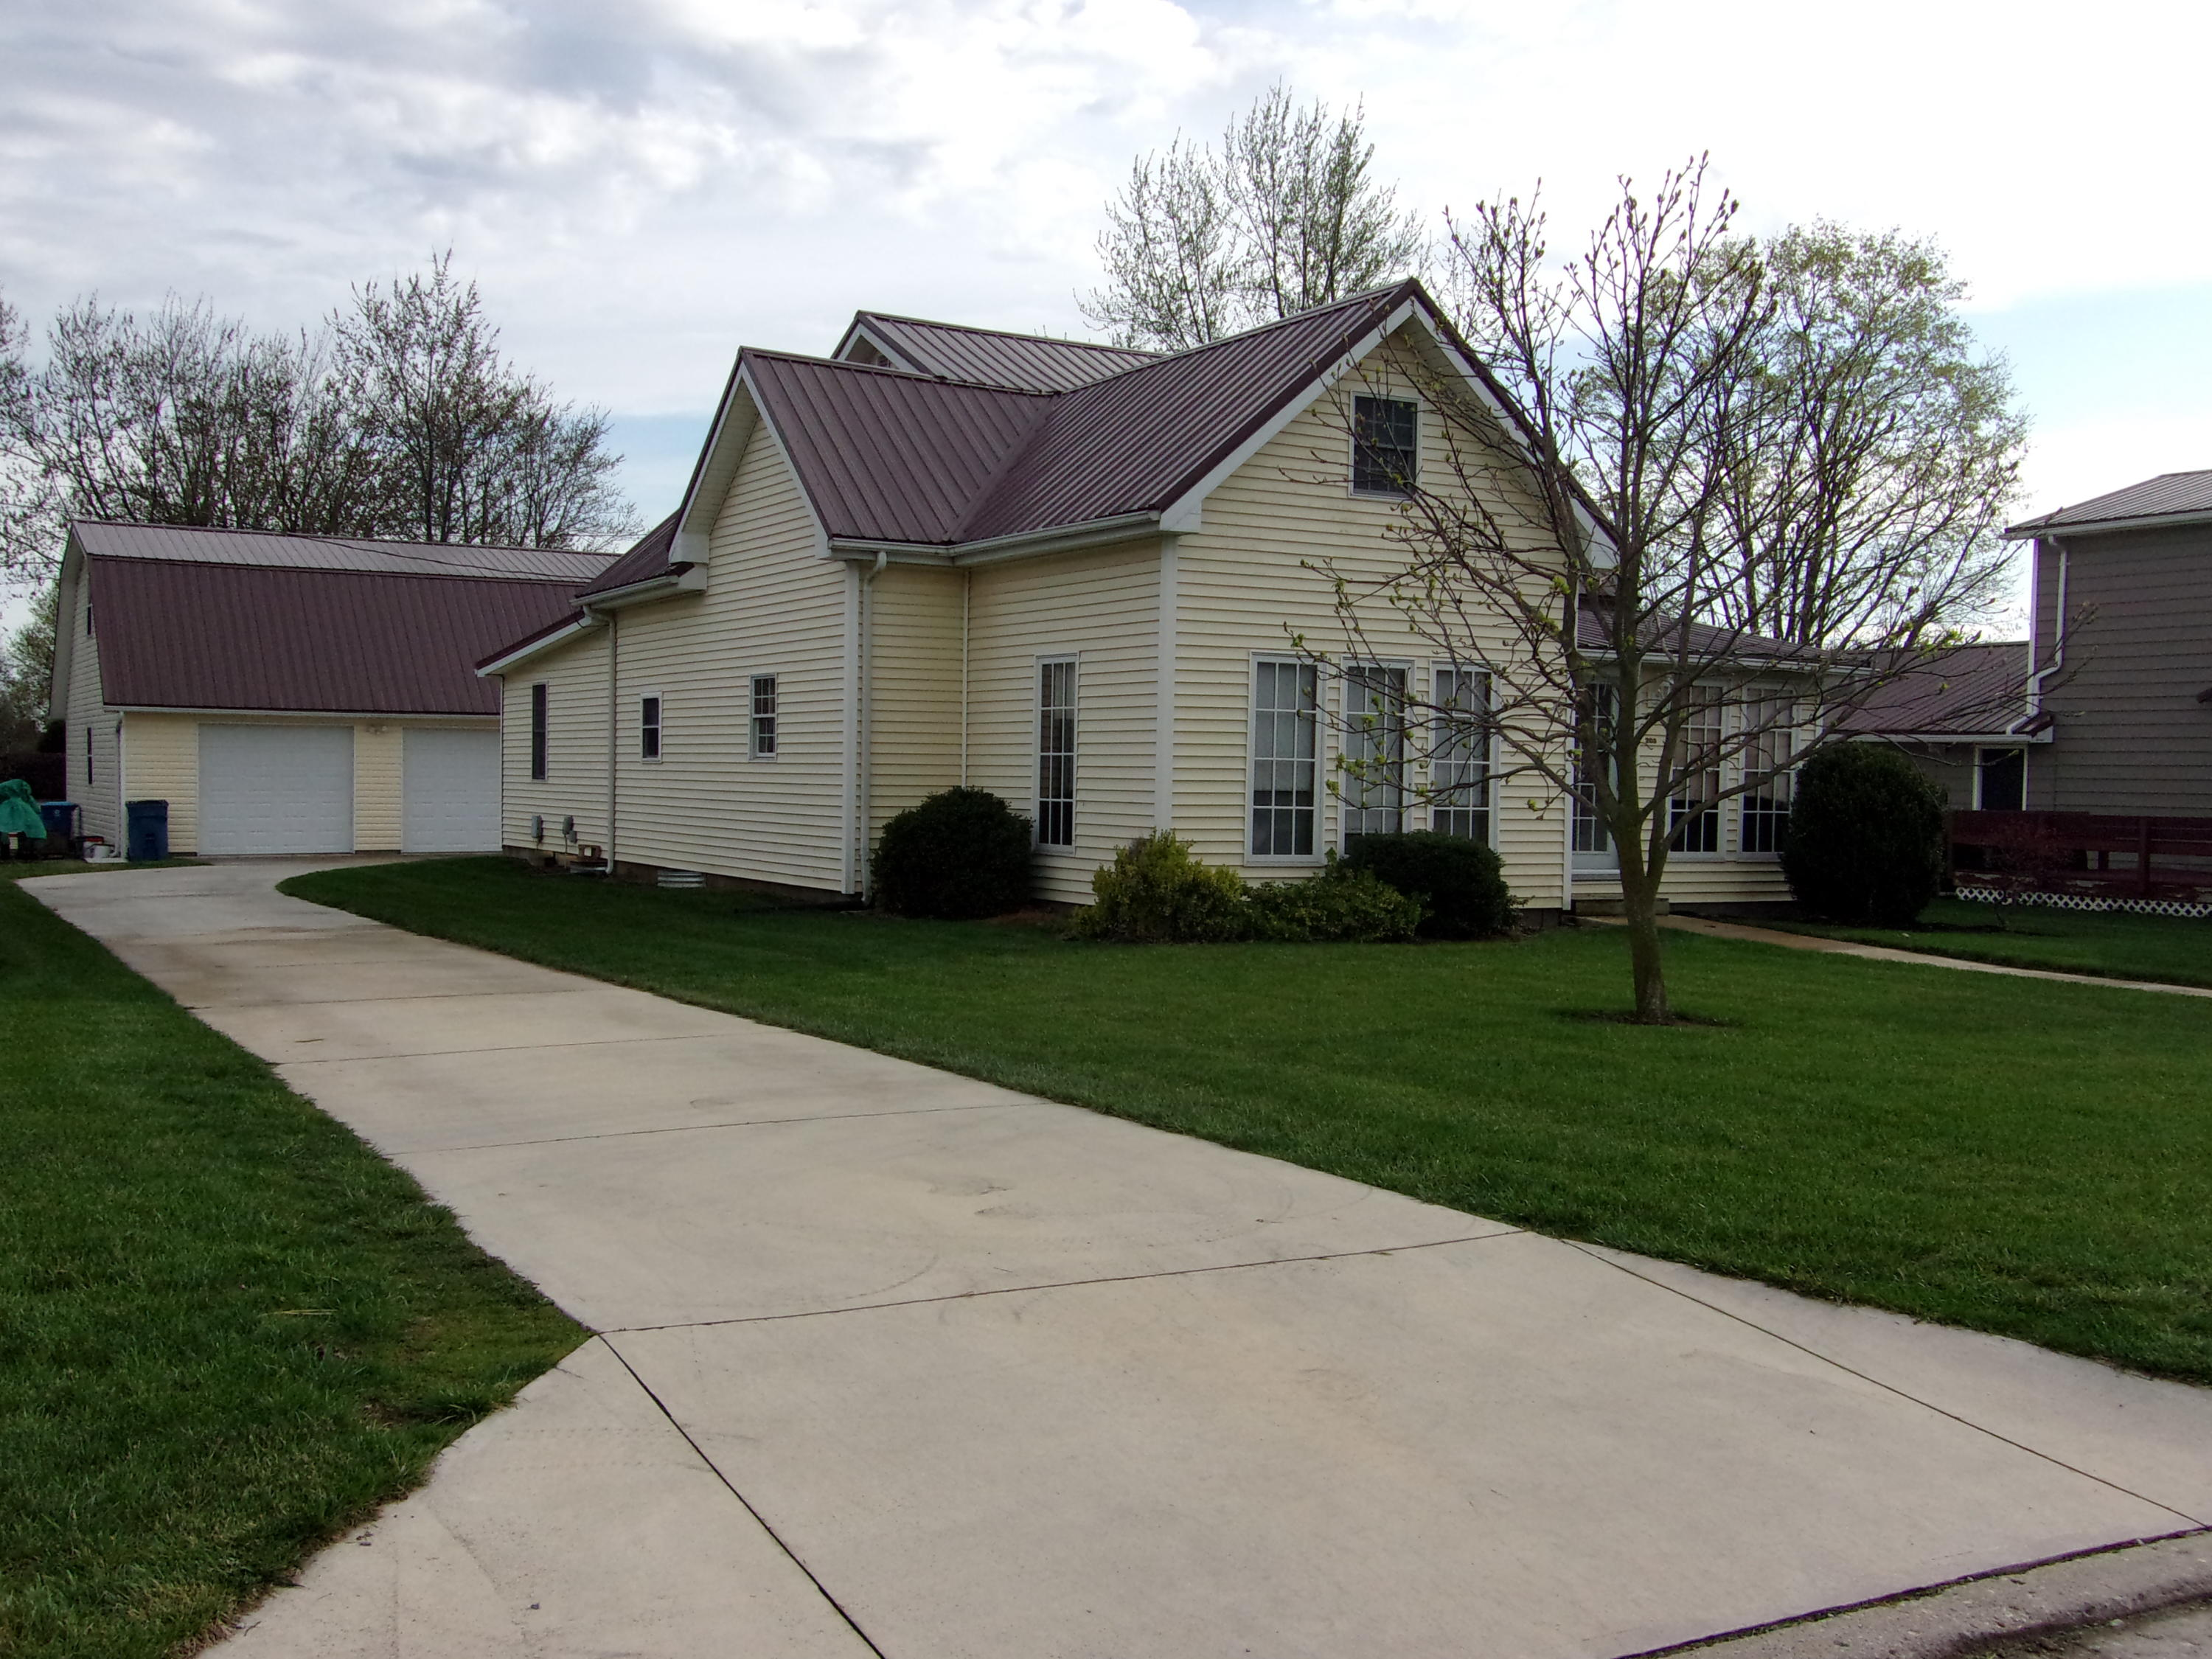 203 W South Street Property Photo - Botkins, OH real estate listing